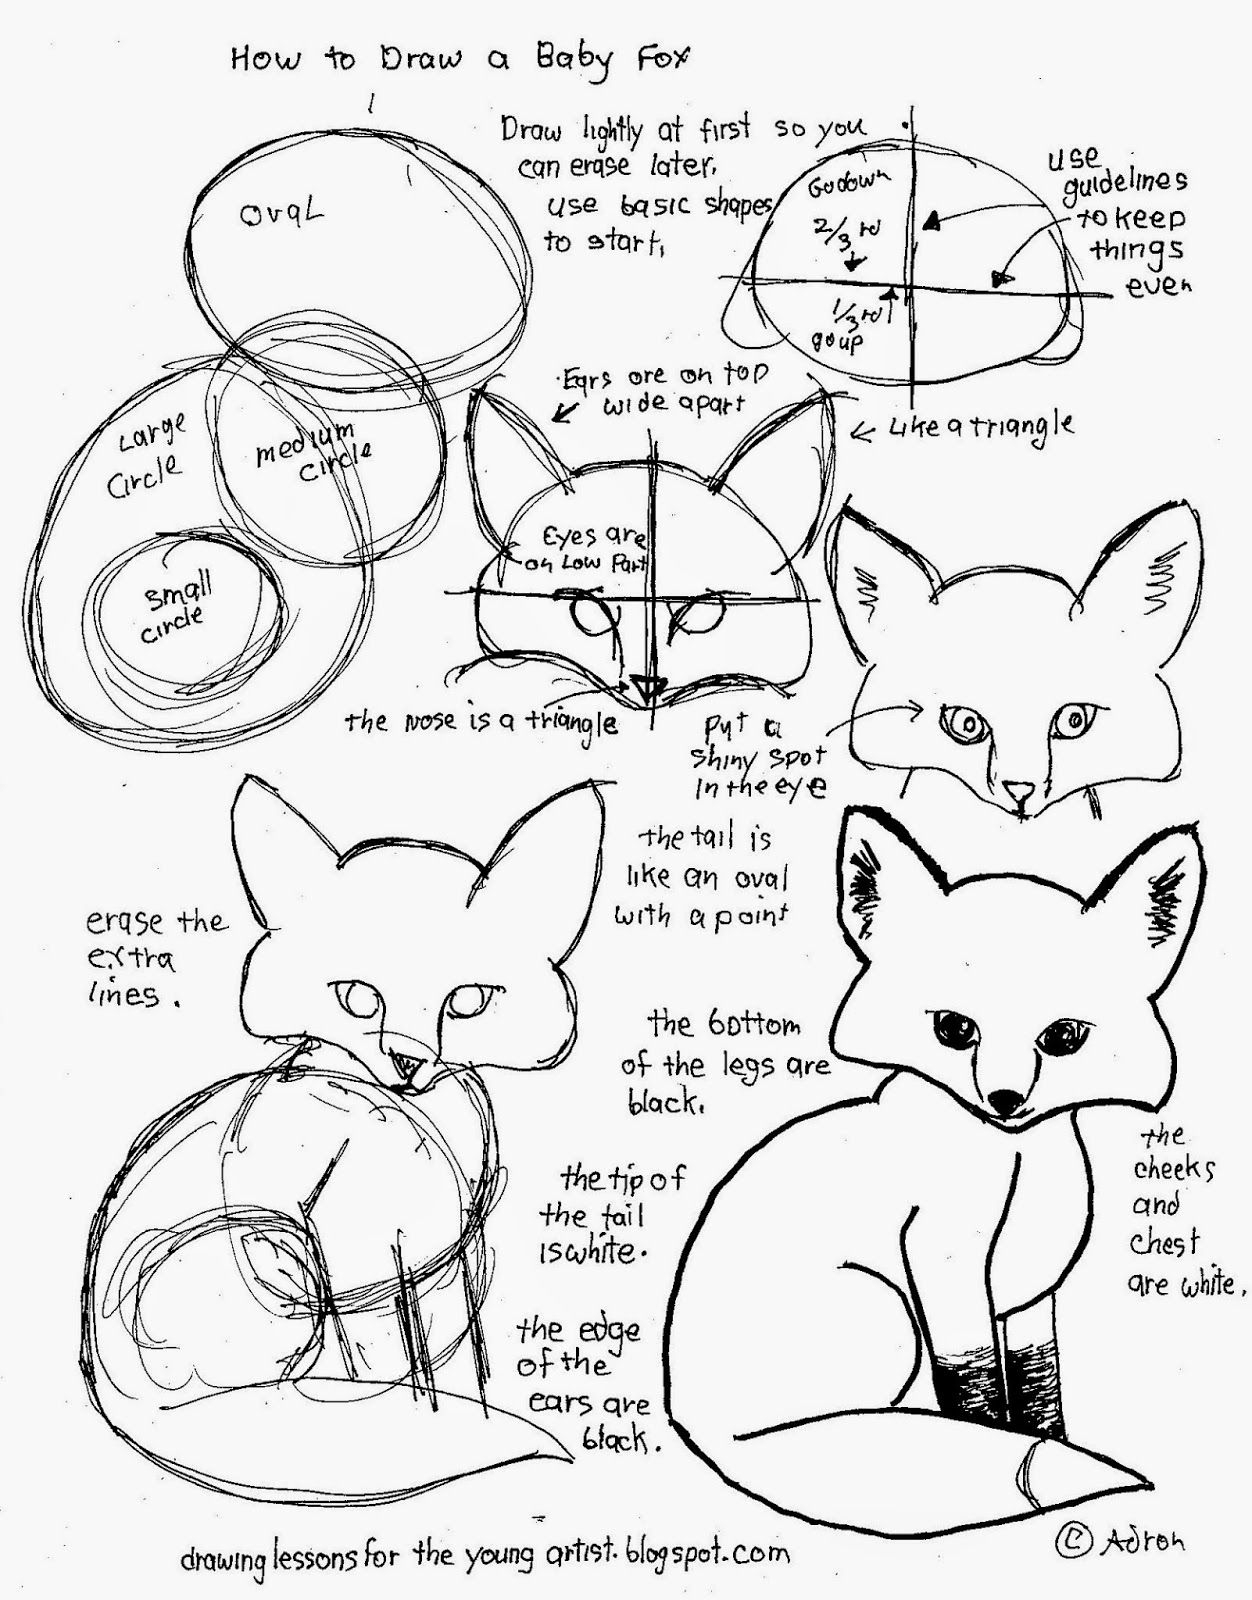 How To Draw Worksheets For The Young Artist: How To Draw A Baby Fox | Free Printable Drawing Worksheets